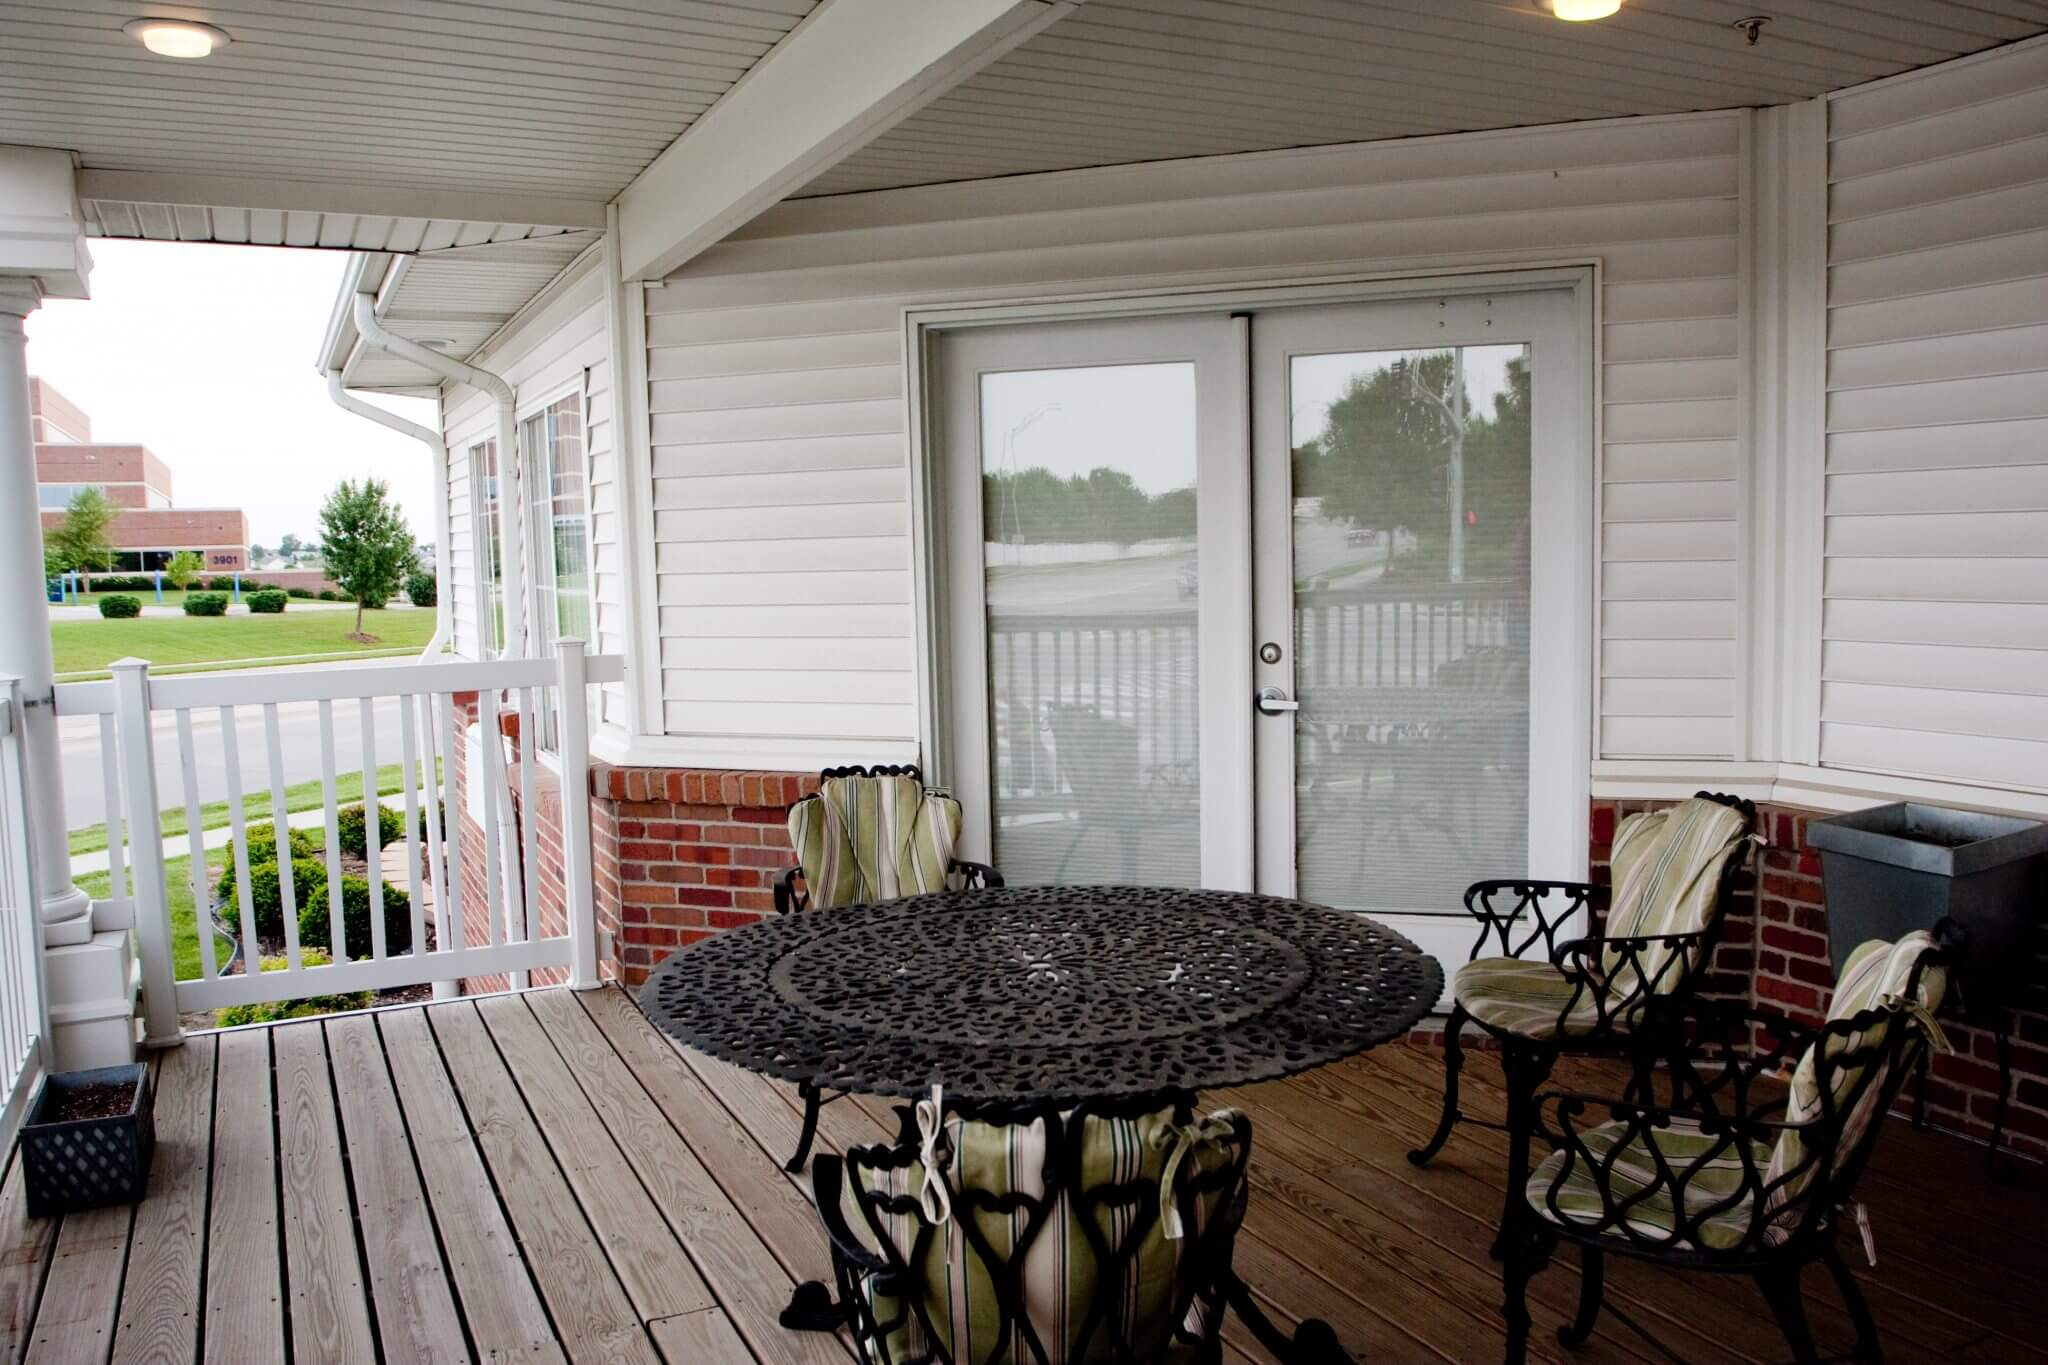 wooden porch with table and chairs